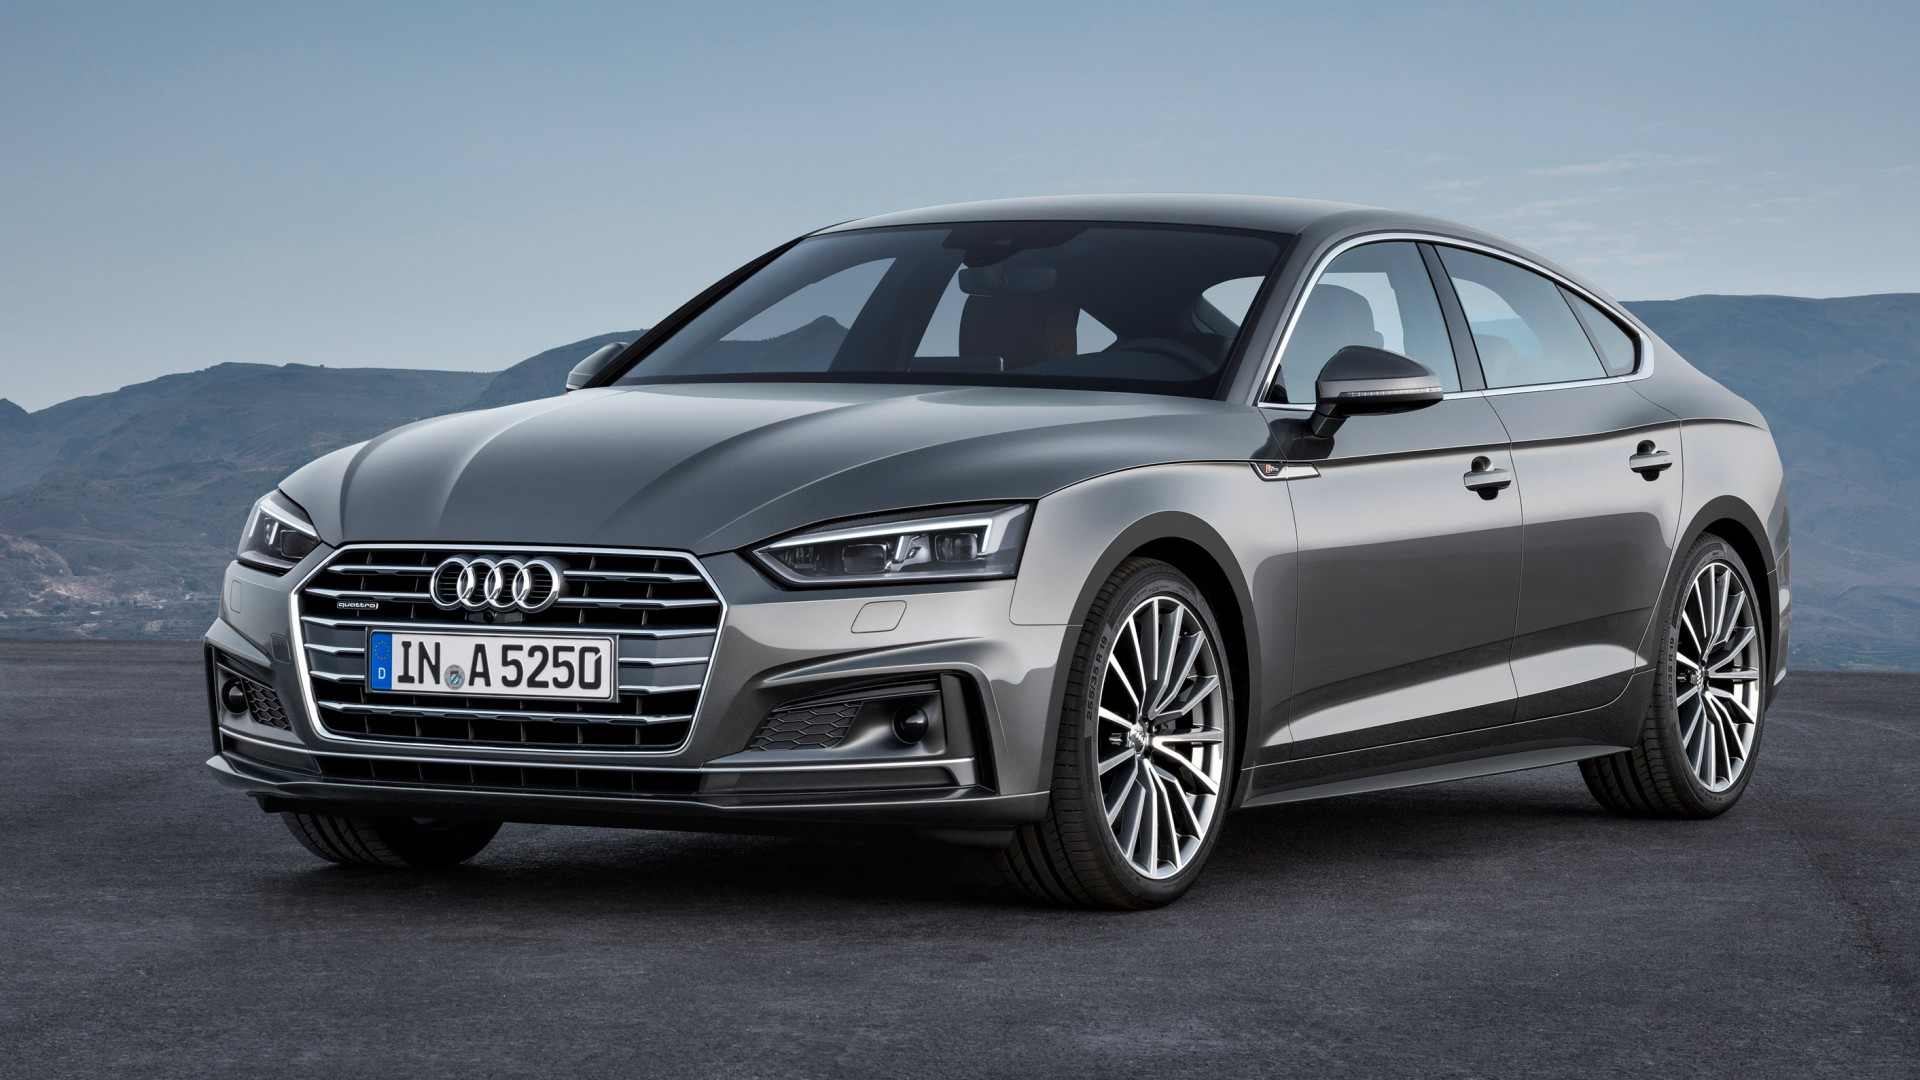 2018 audi a5 sportback wallpaper | hd car wallpapers | id #7179